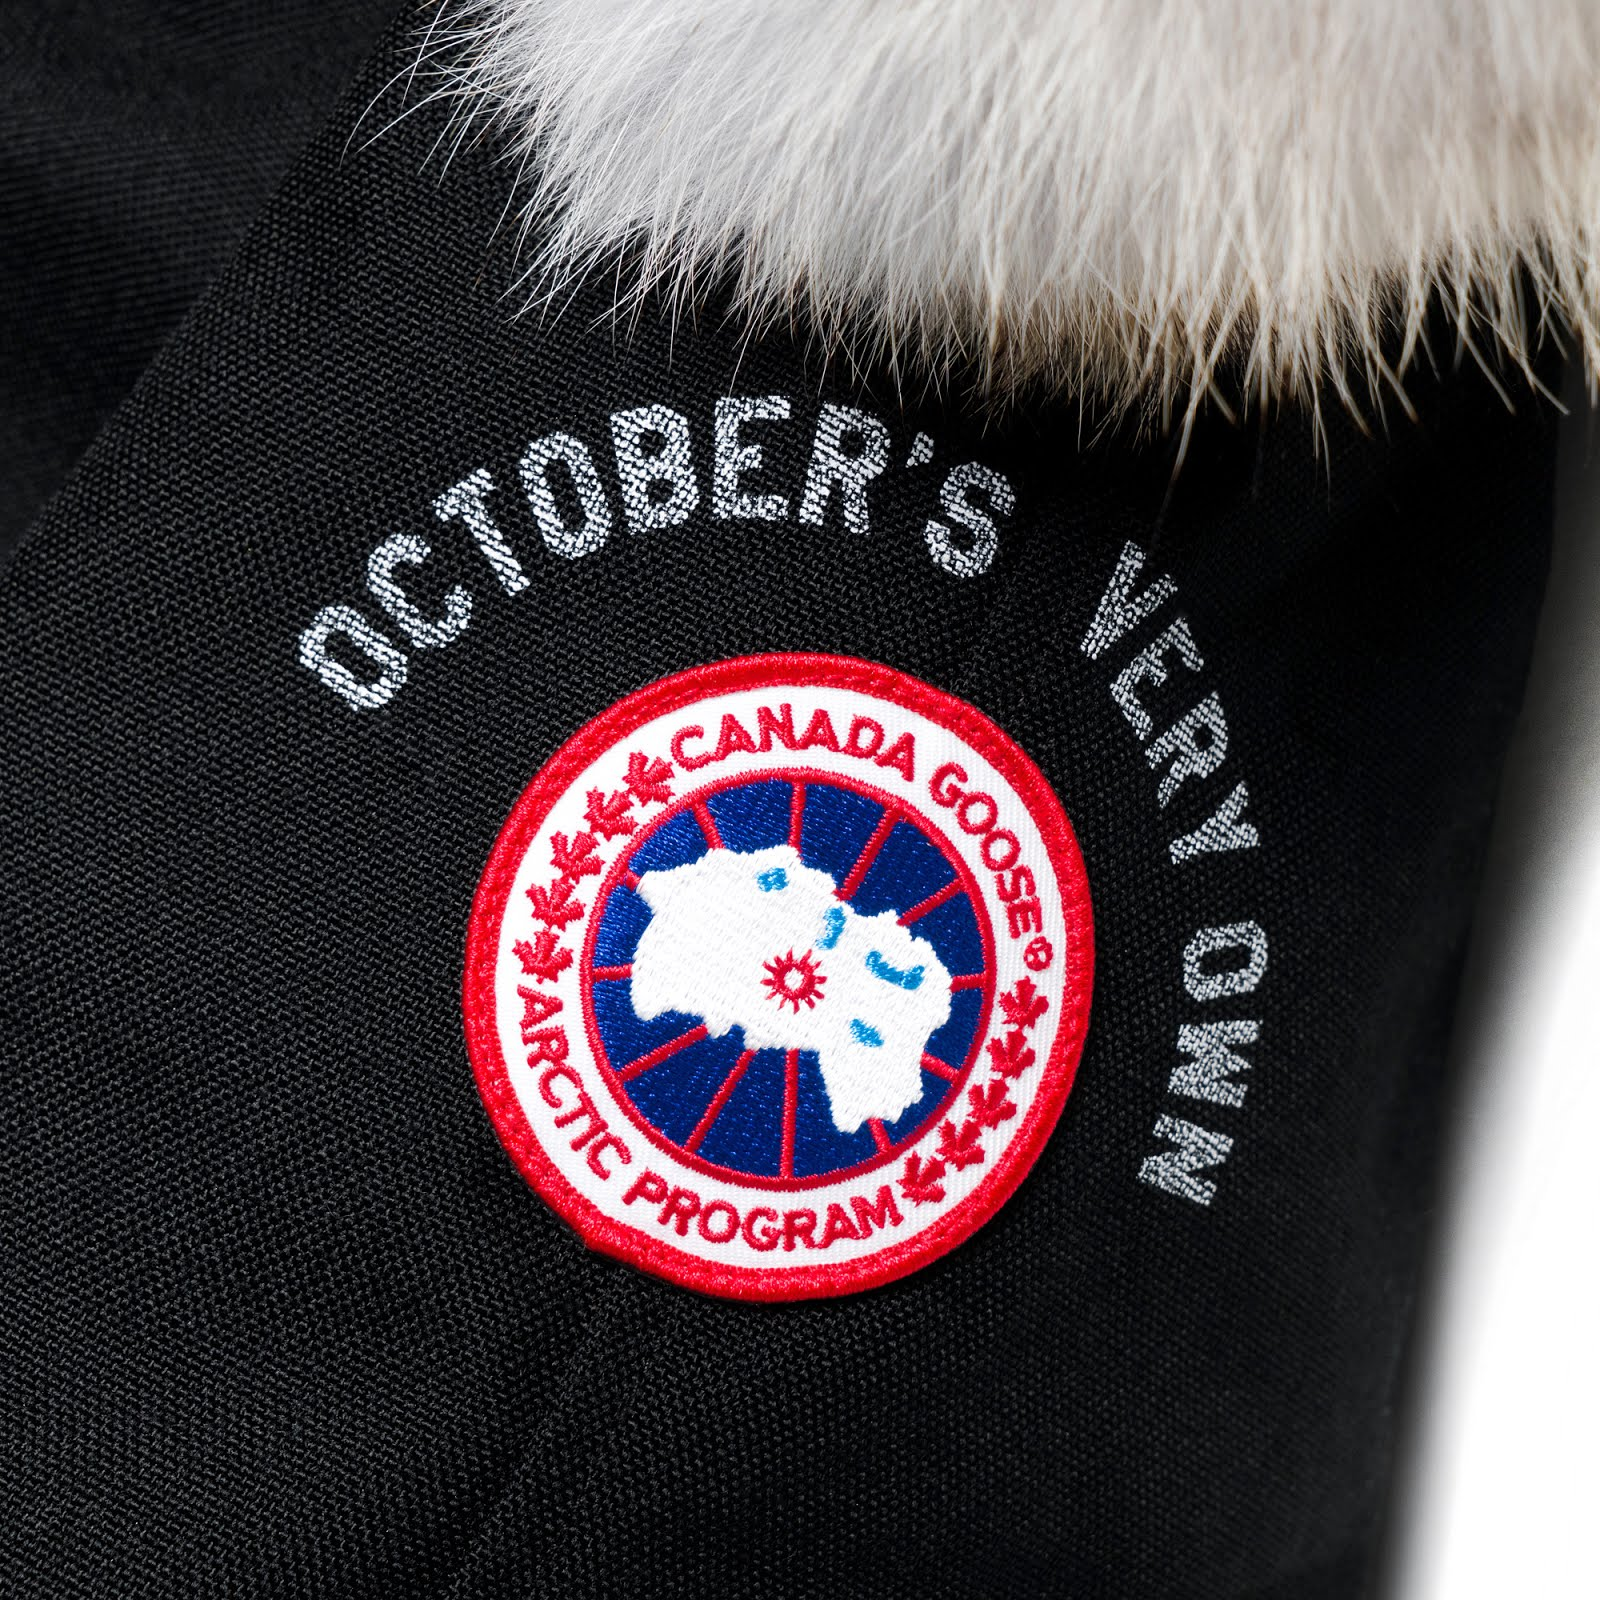 OVO x Canada Goose Winter 2016 Collection - MR. N/A | Lifestyle Media Platform